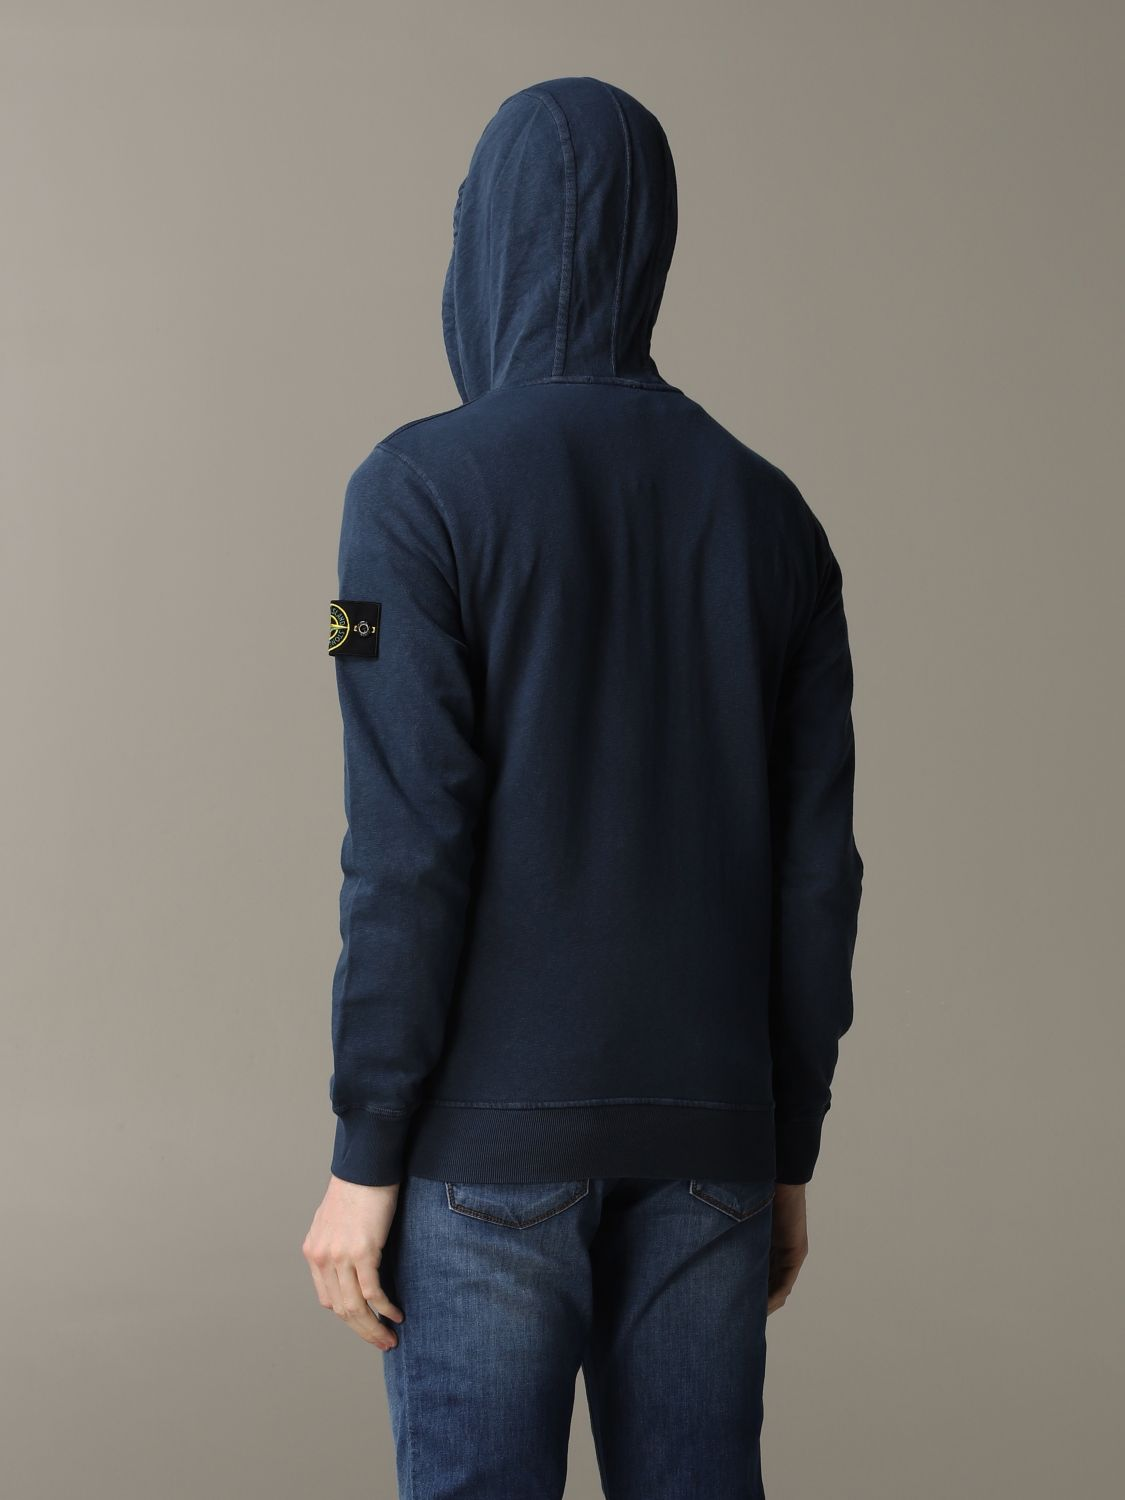 Sweatshirt men Stone Island avion 3